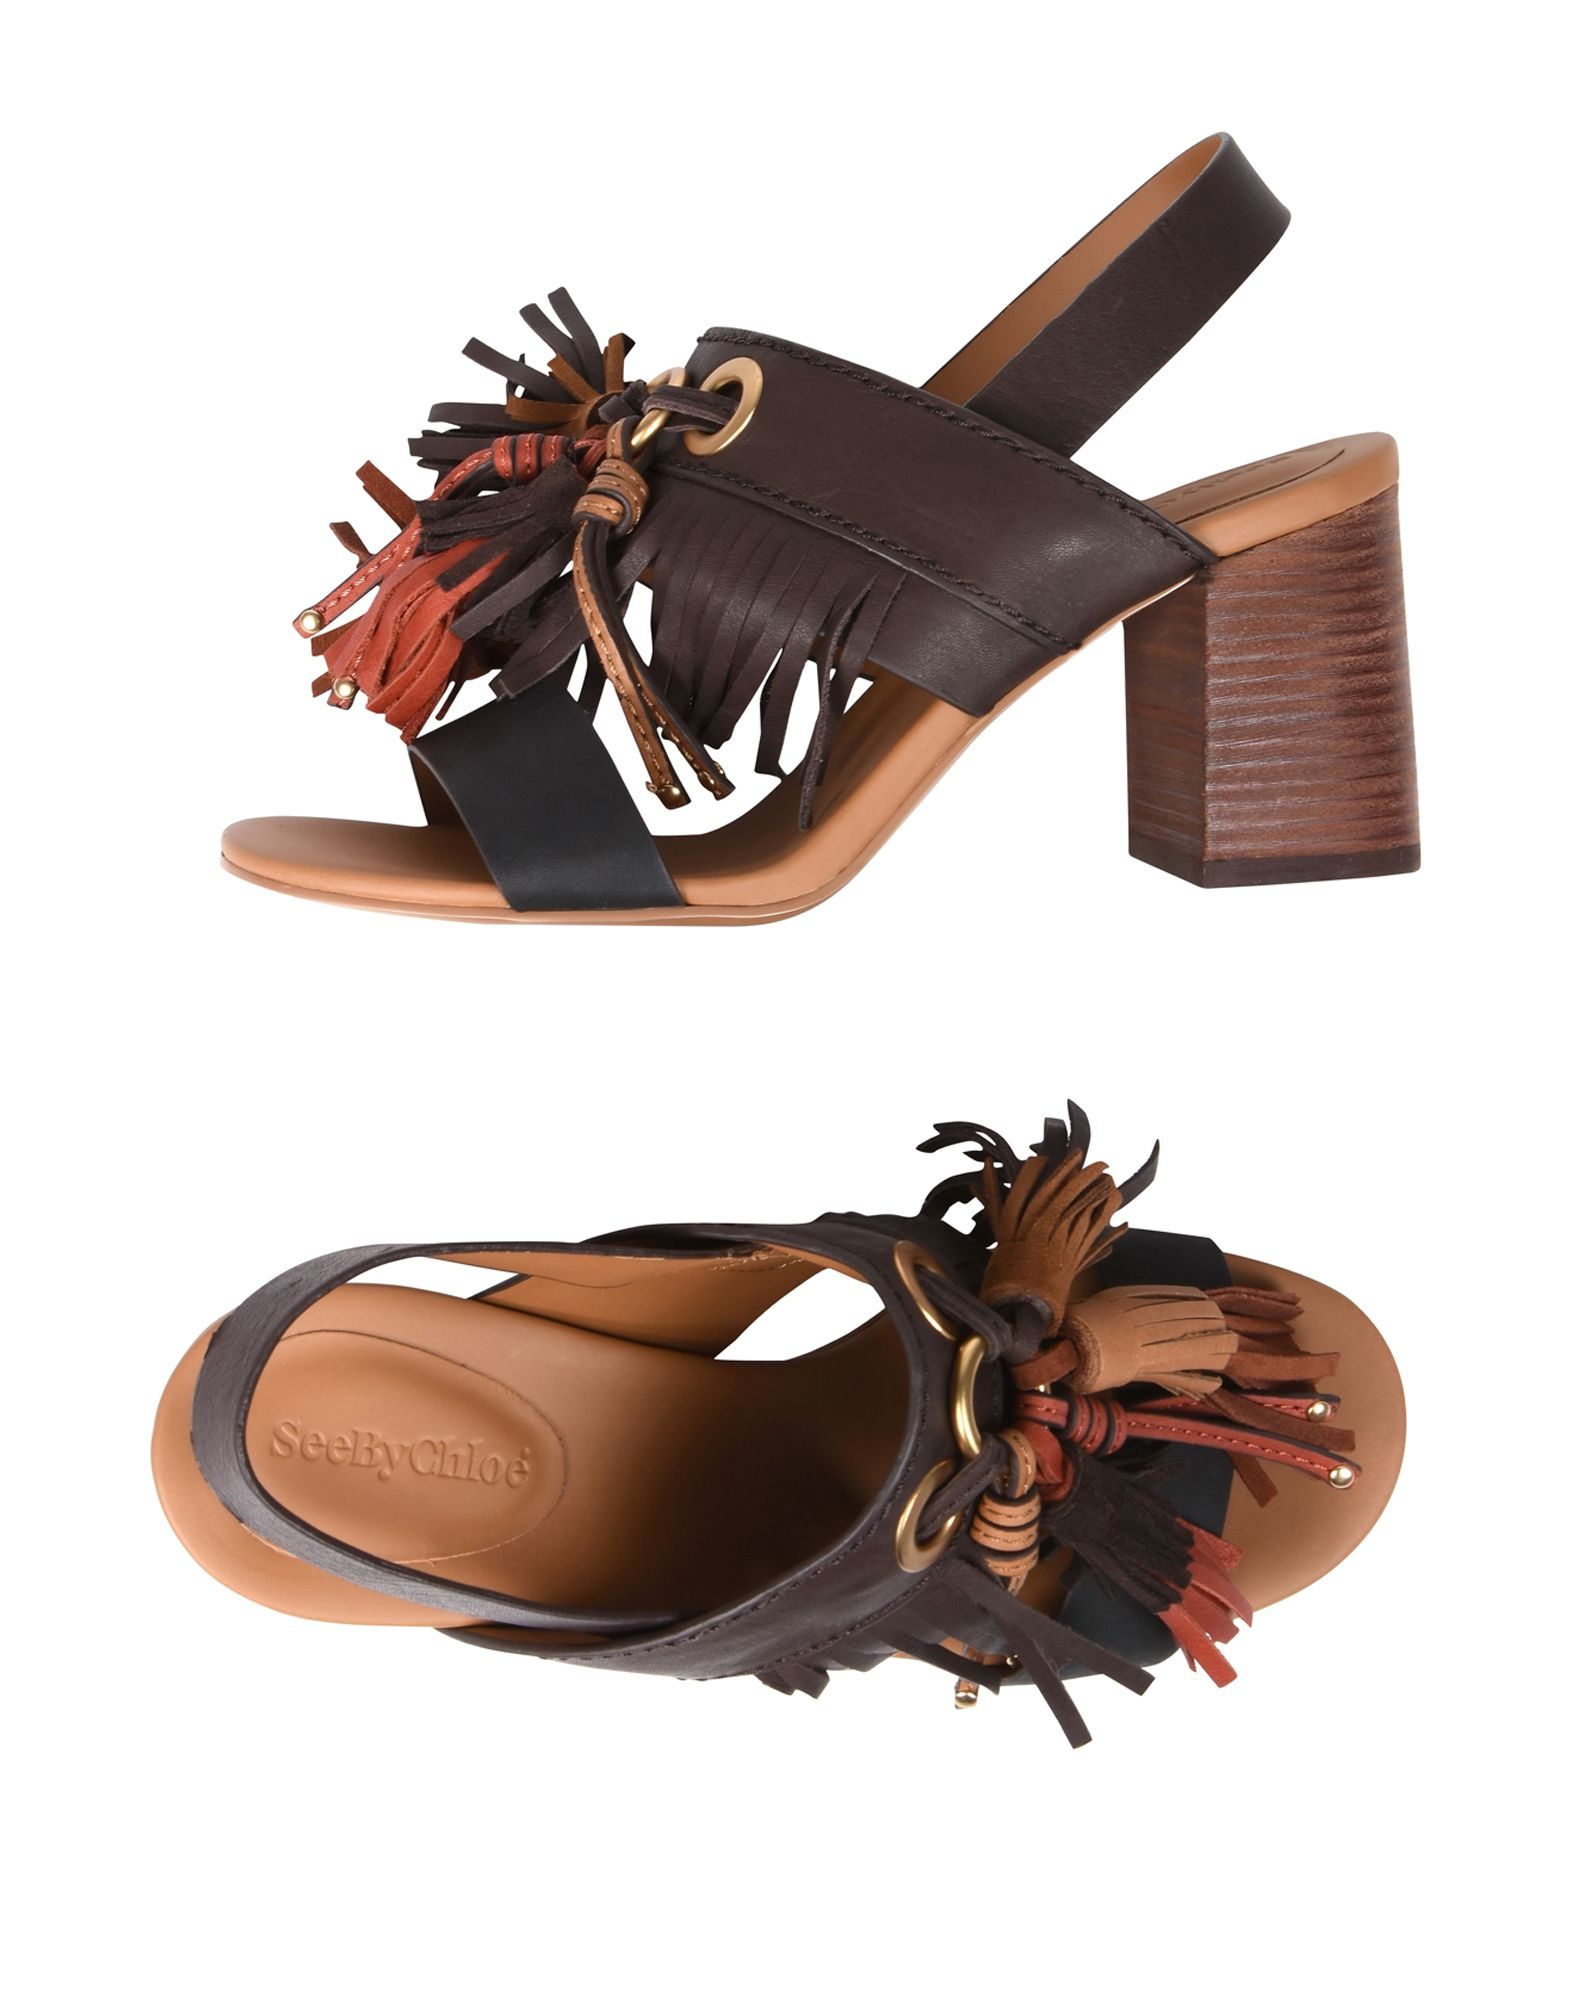 Sandales See By Chloé Femme - Sandales See By Chloé   - 11435790BT